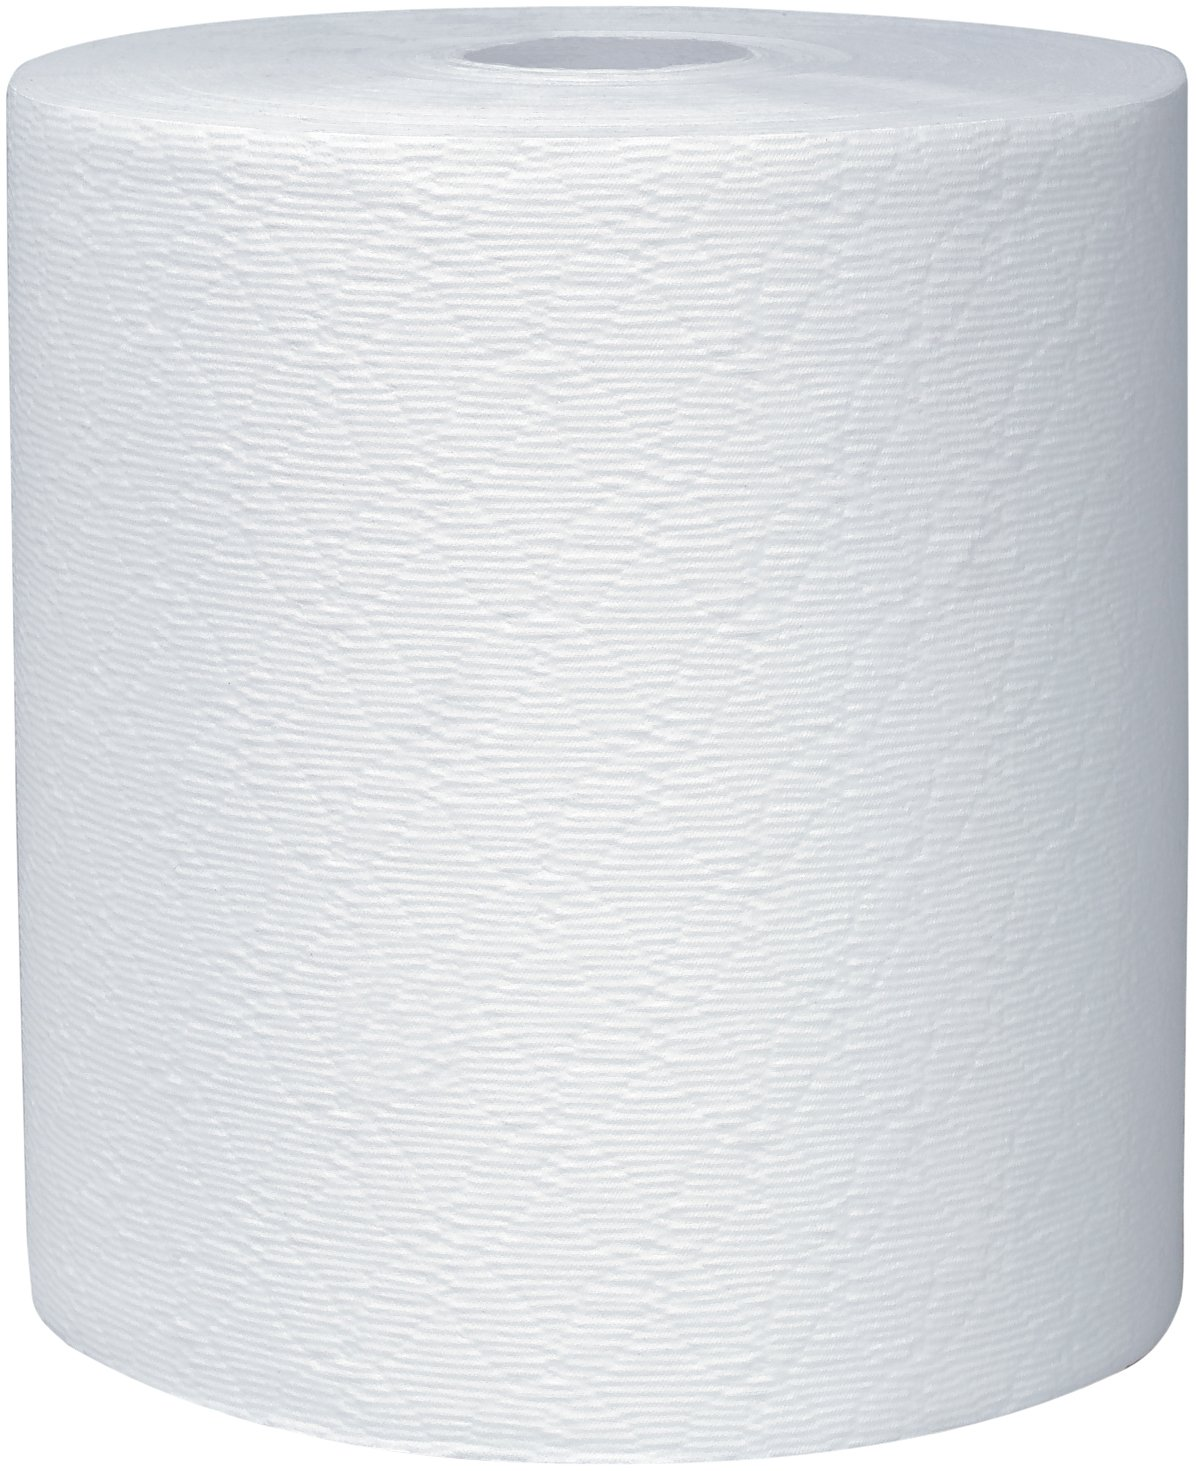 Scott Essential (formerly Kleenex) Hard Roll Paper Towels (50606) with Premium Absorbency Pockets, White, 6 Rolls / Case, 3,600 feet - Same Kleenex quality, now Scott branded by Kleenex (Image #1)